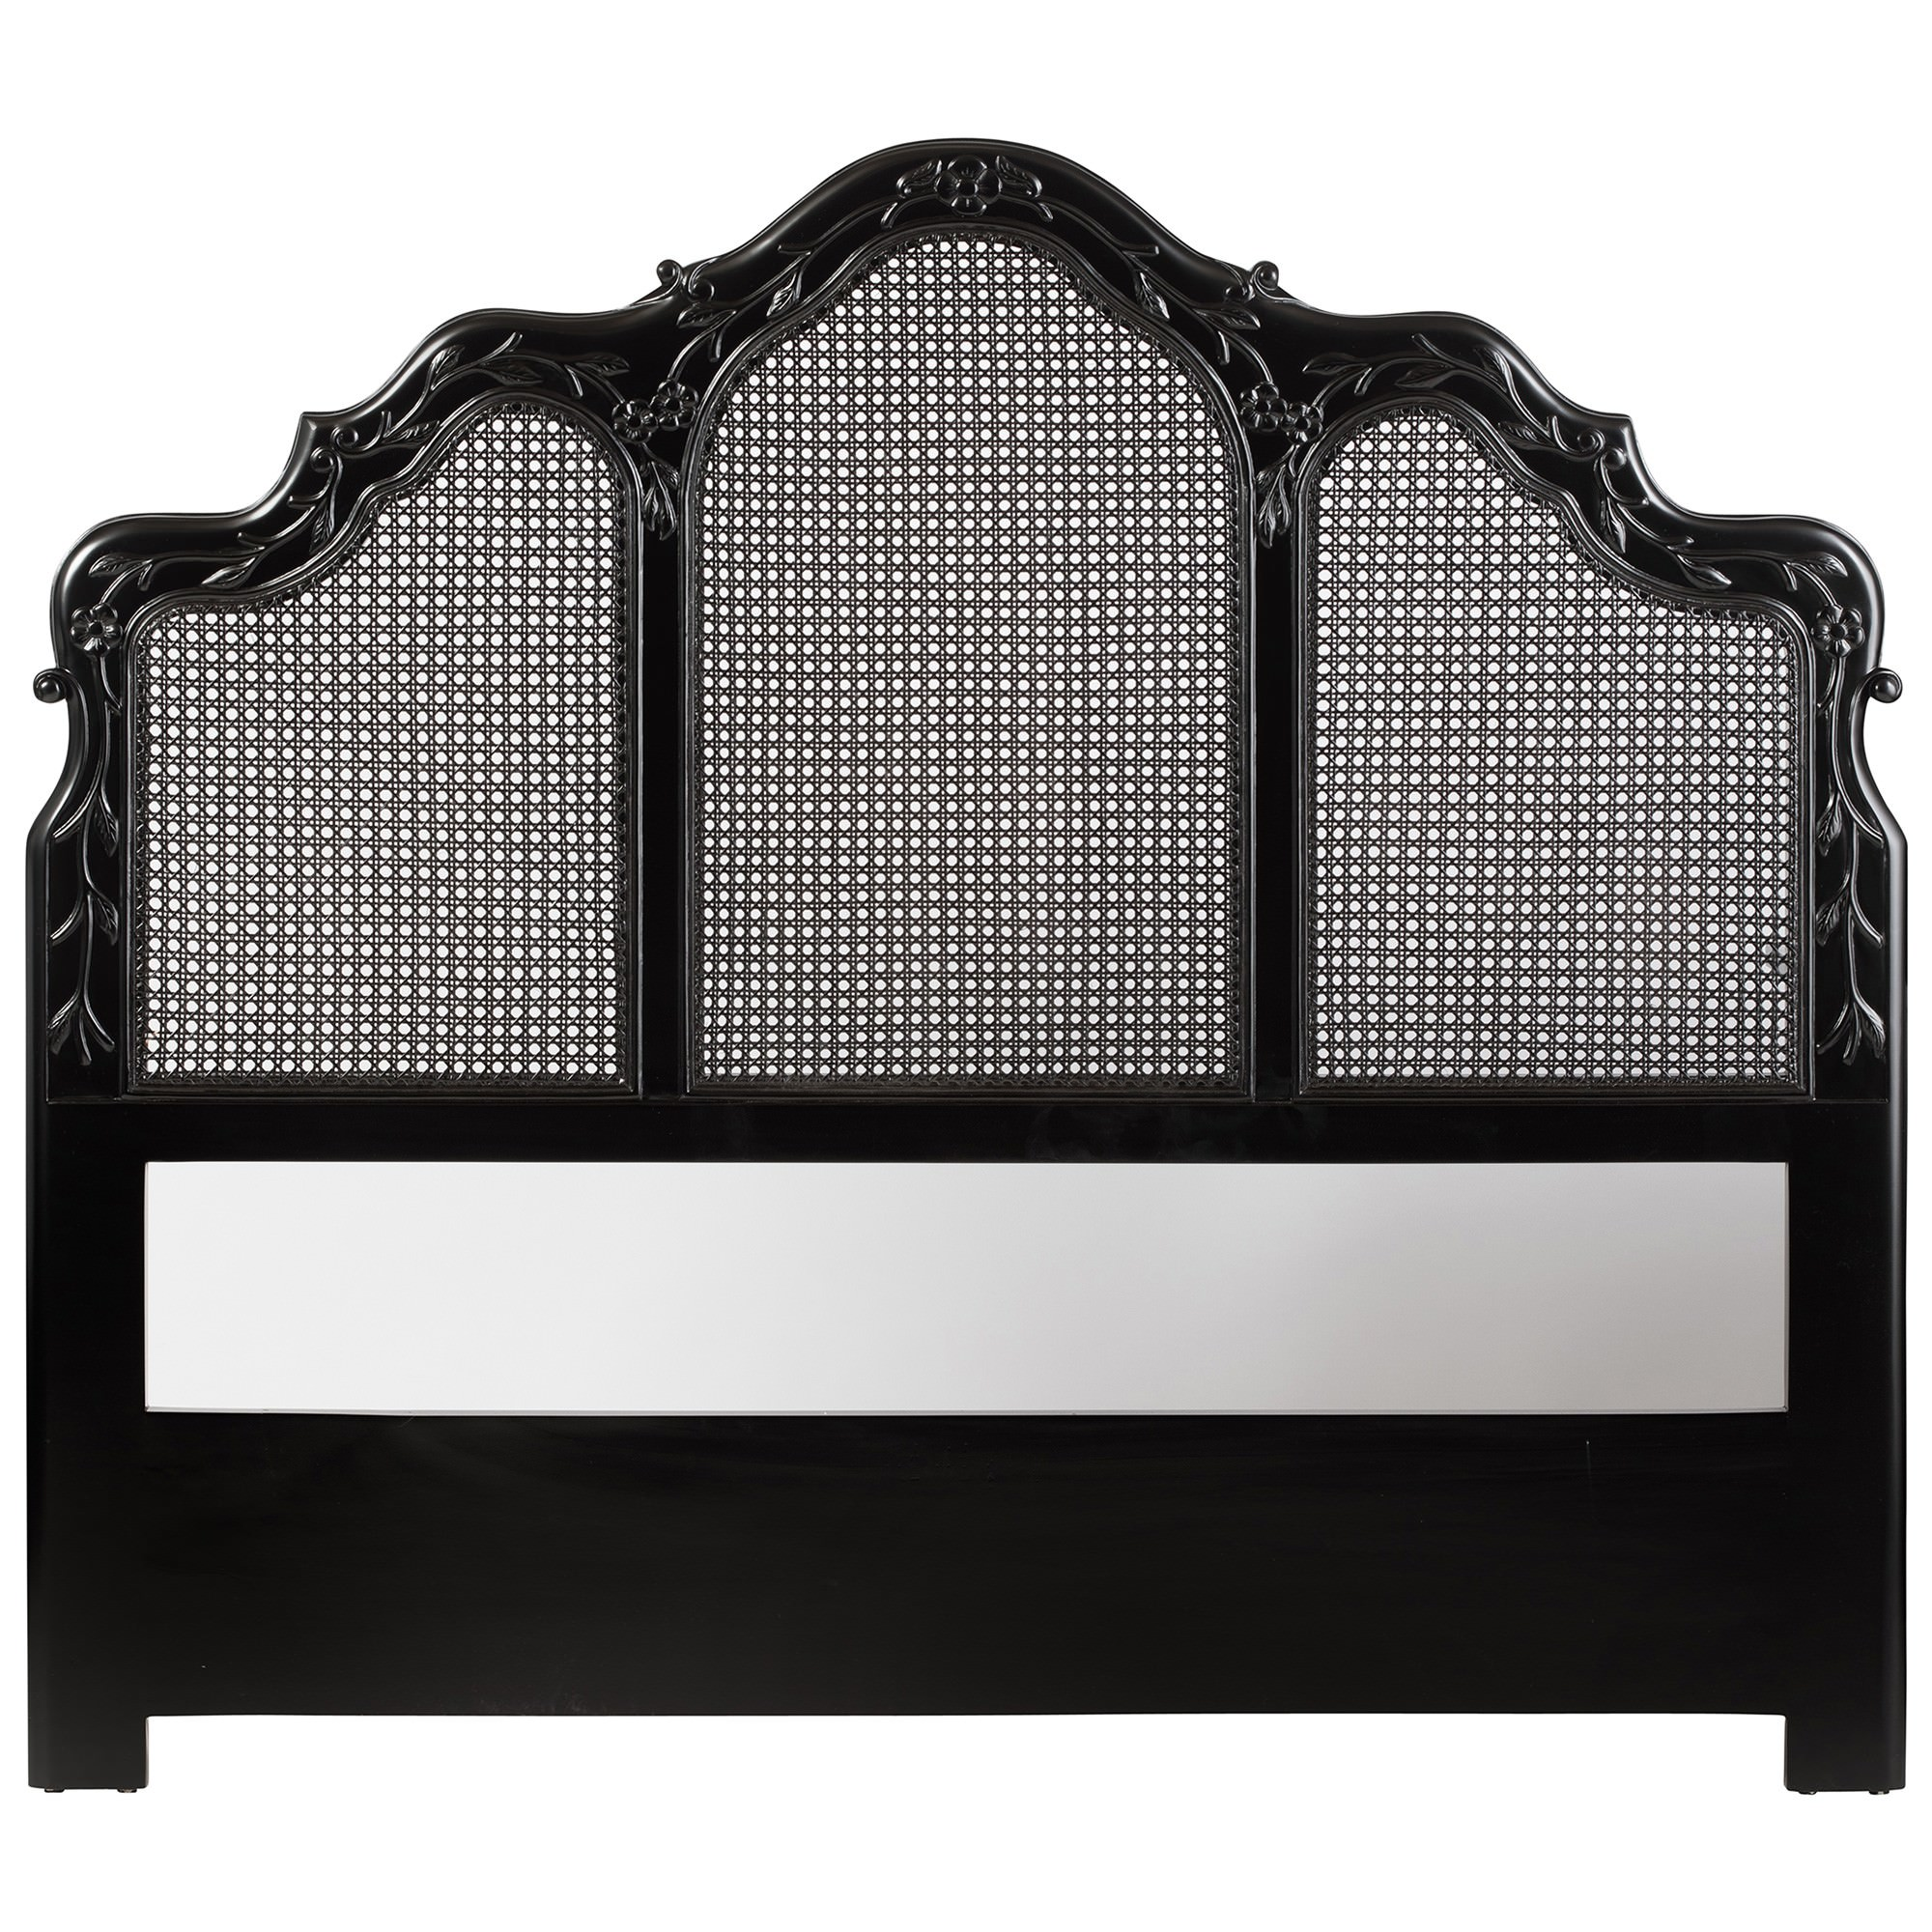 Leches Mahogany Timber Bed Headboard, Queen, Black